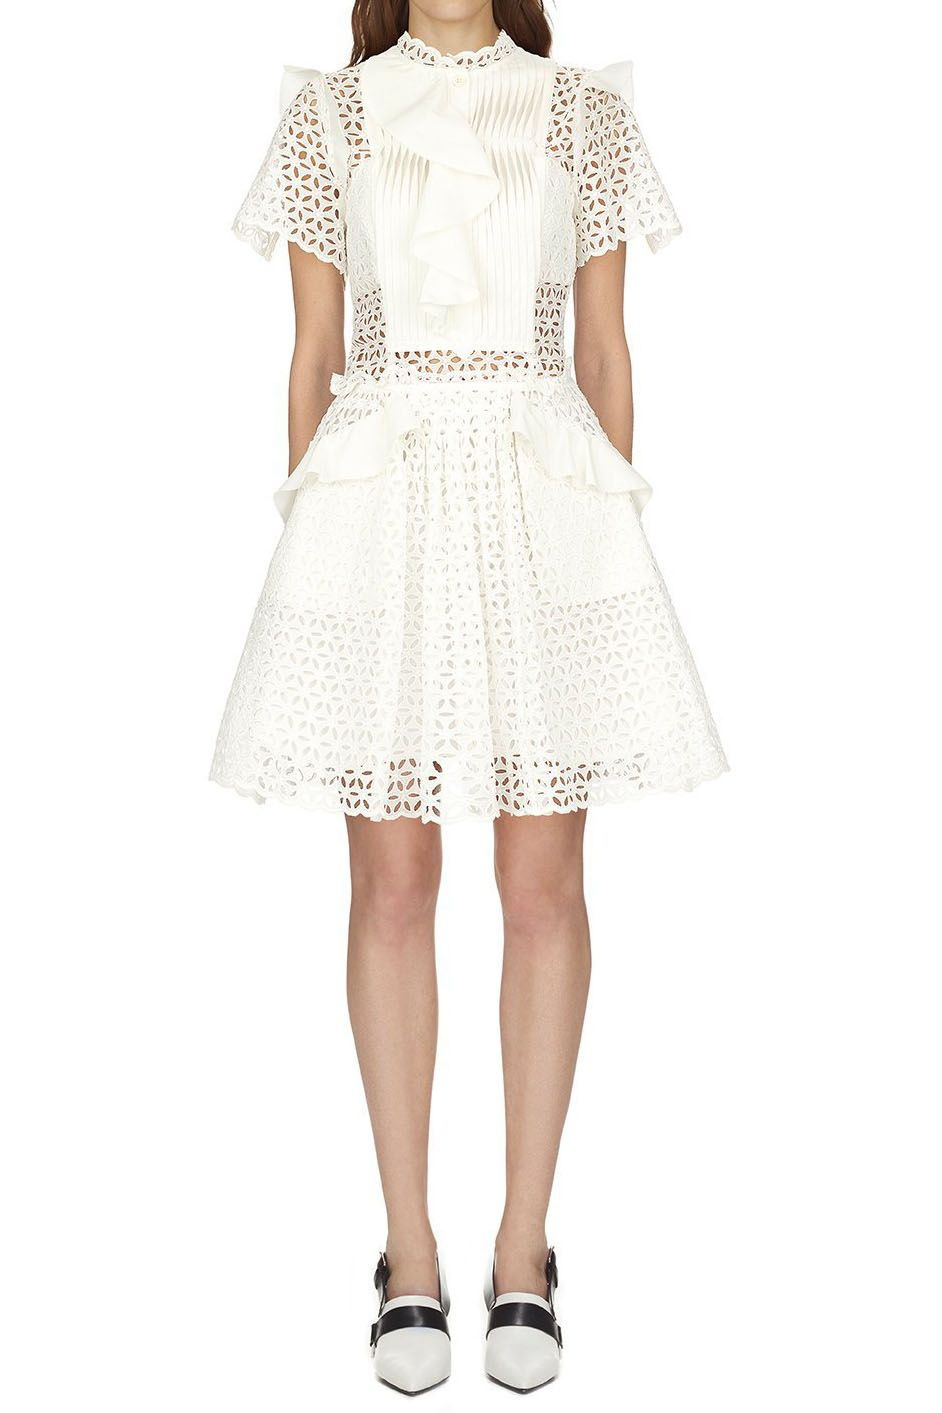 c92e9b97b568 Self Portrait Broderie Anglaise Frilled Mini Dress | Clothes | Self ...